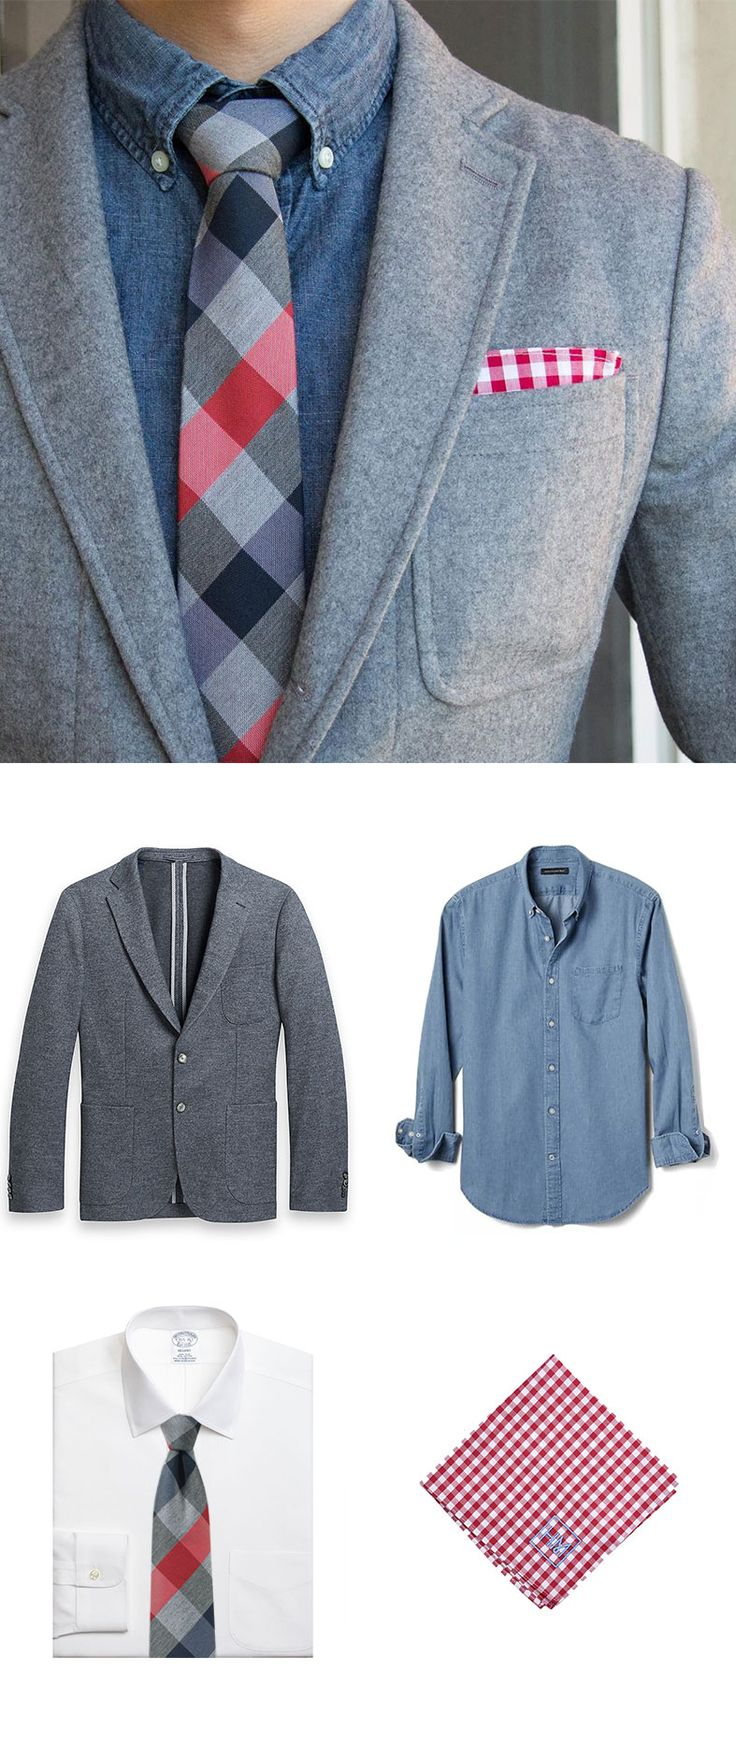 Plaid Tie and Denim Shirt - Bold + Cool Style.